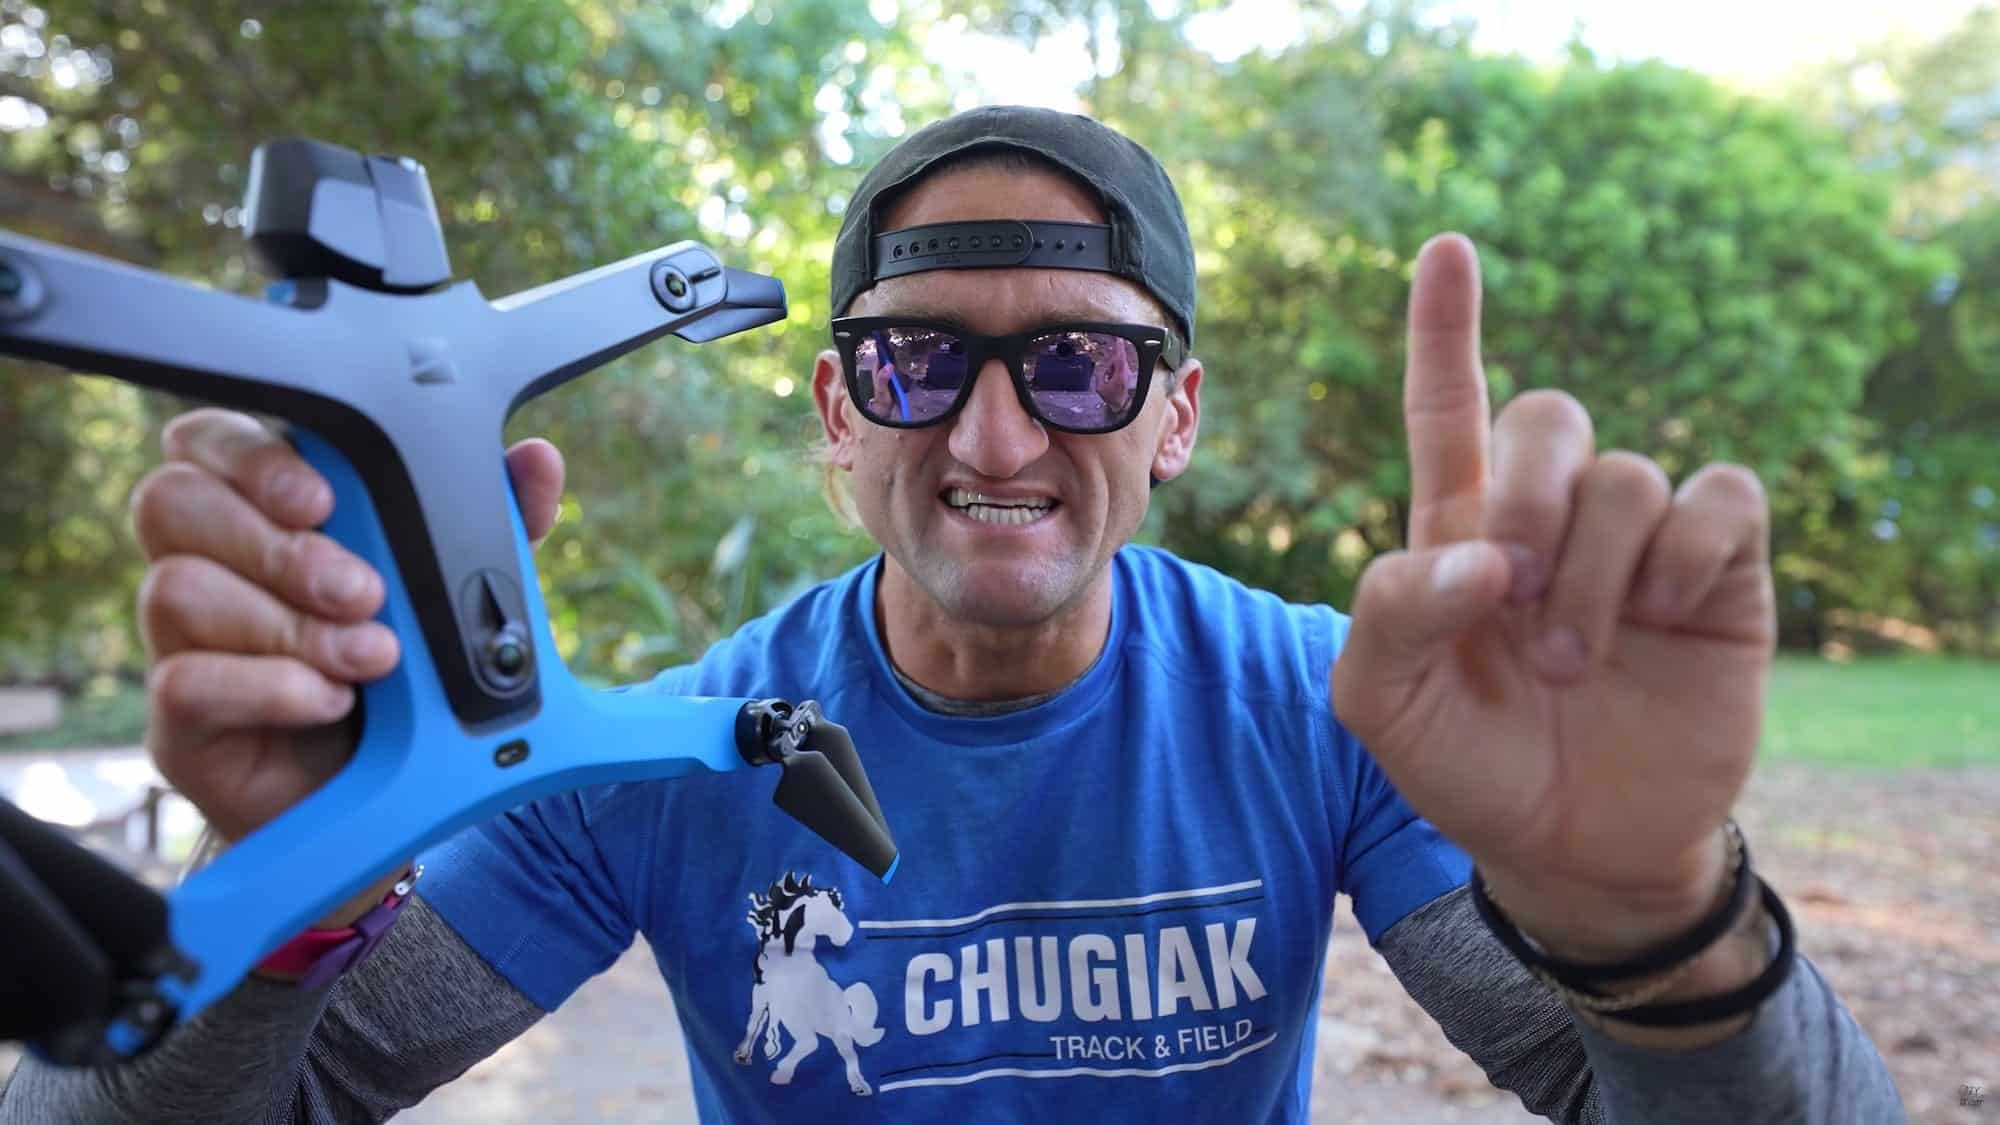 Even Casey Neistat had to wait one year before testing the Skydio 2